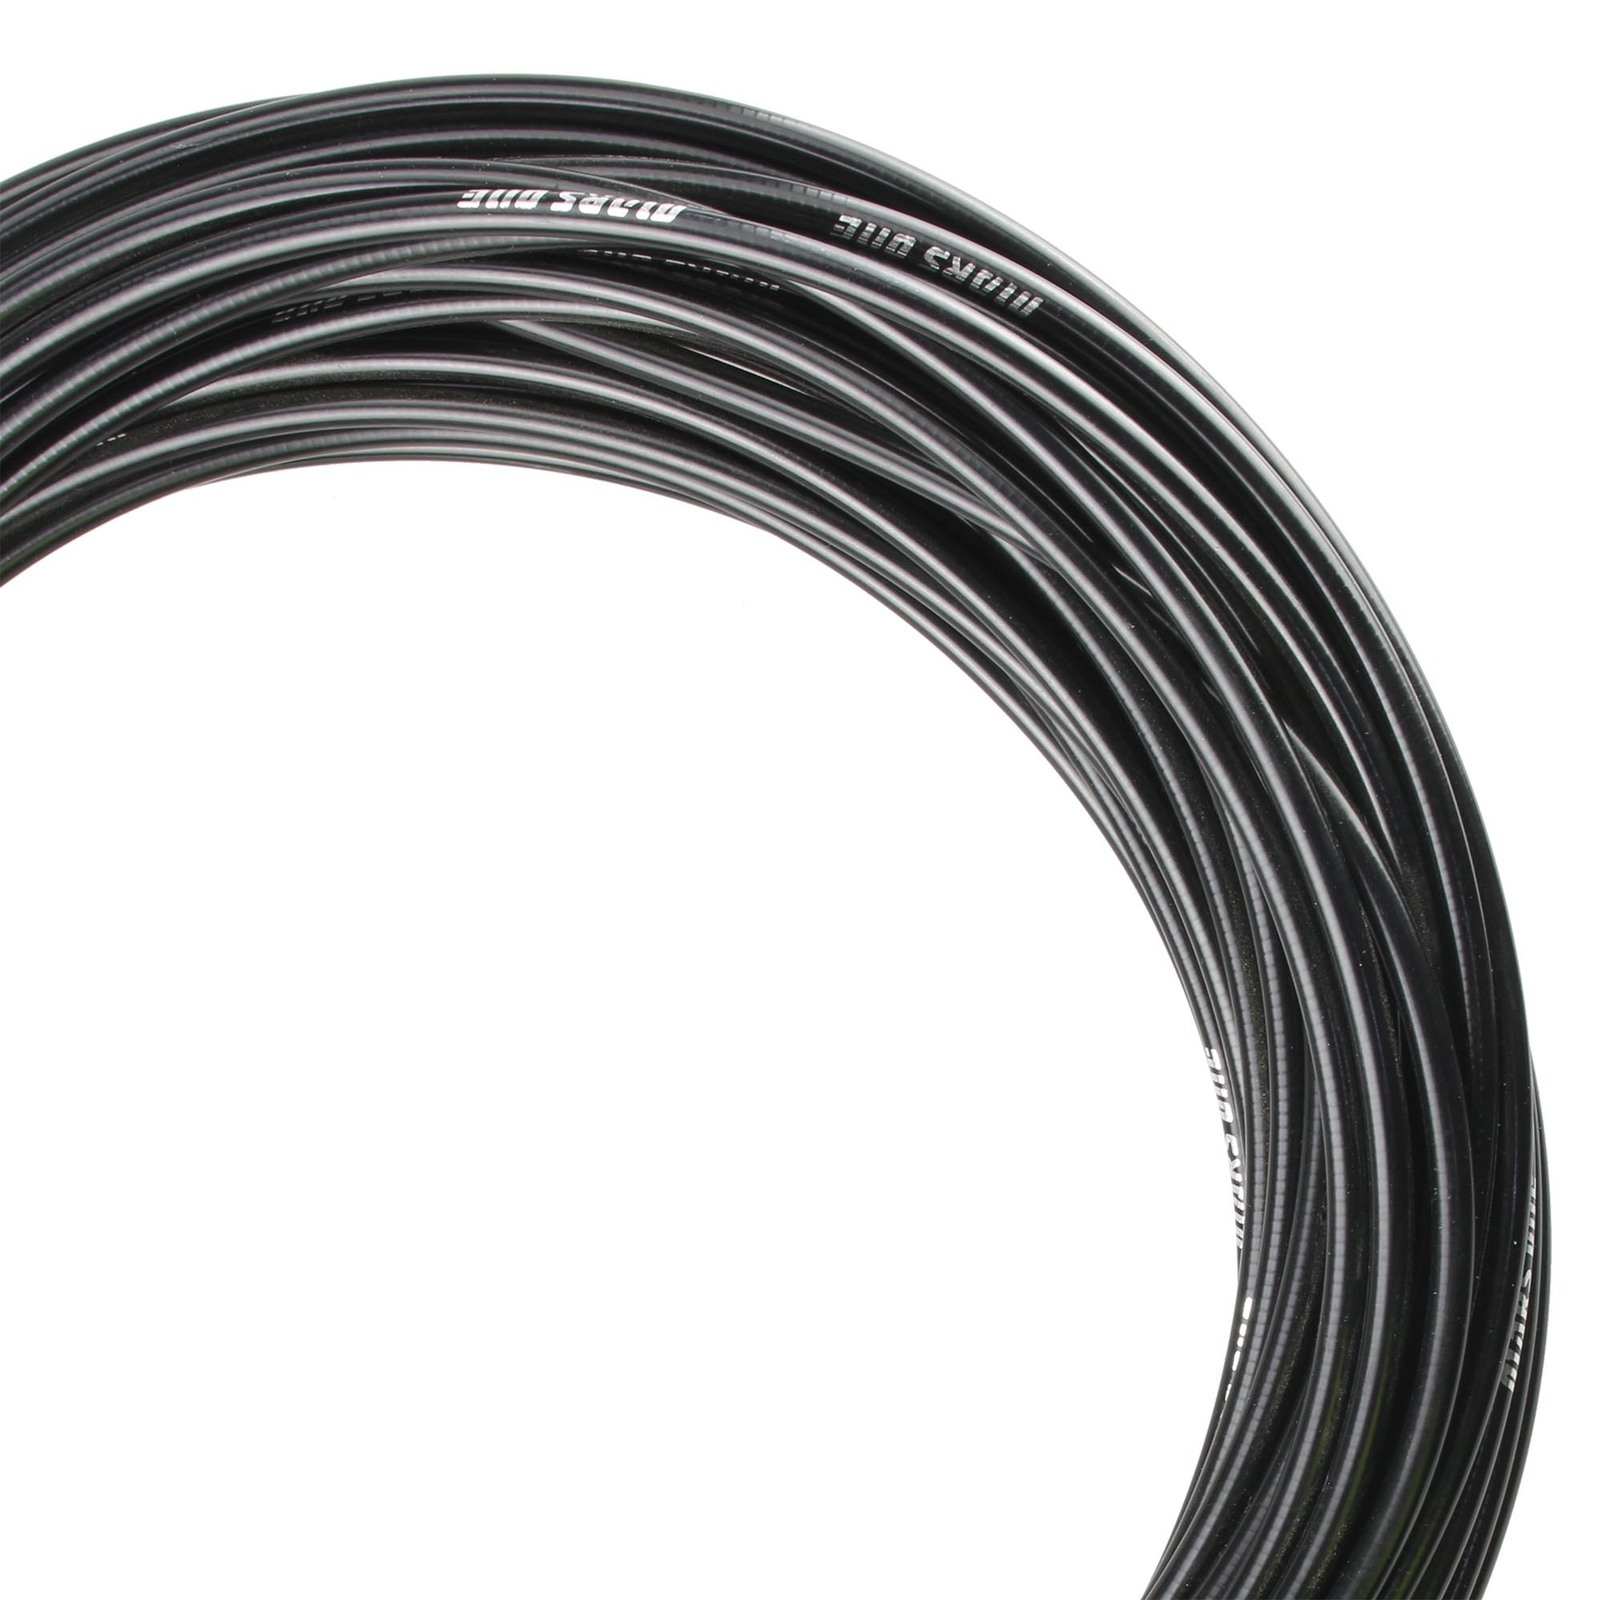 30 METRES BLACK OUTER GEAR CABLE 30 METRES OF 5mm BLACK OUTER BRAKE CABLE